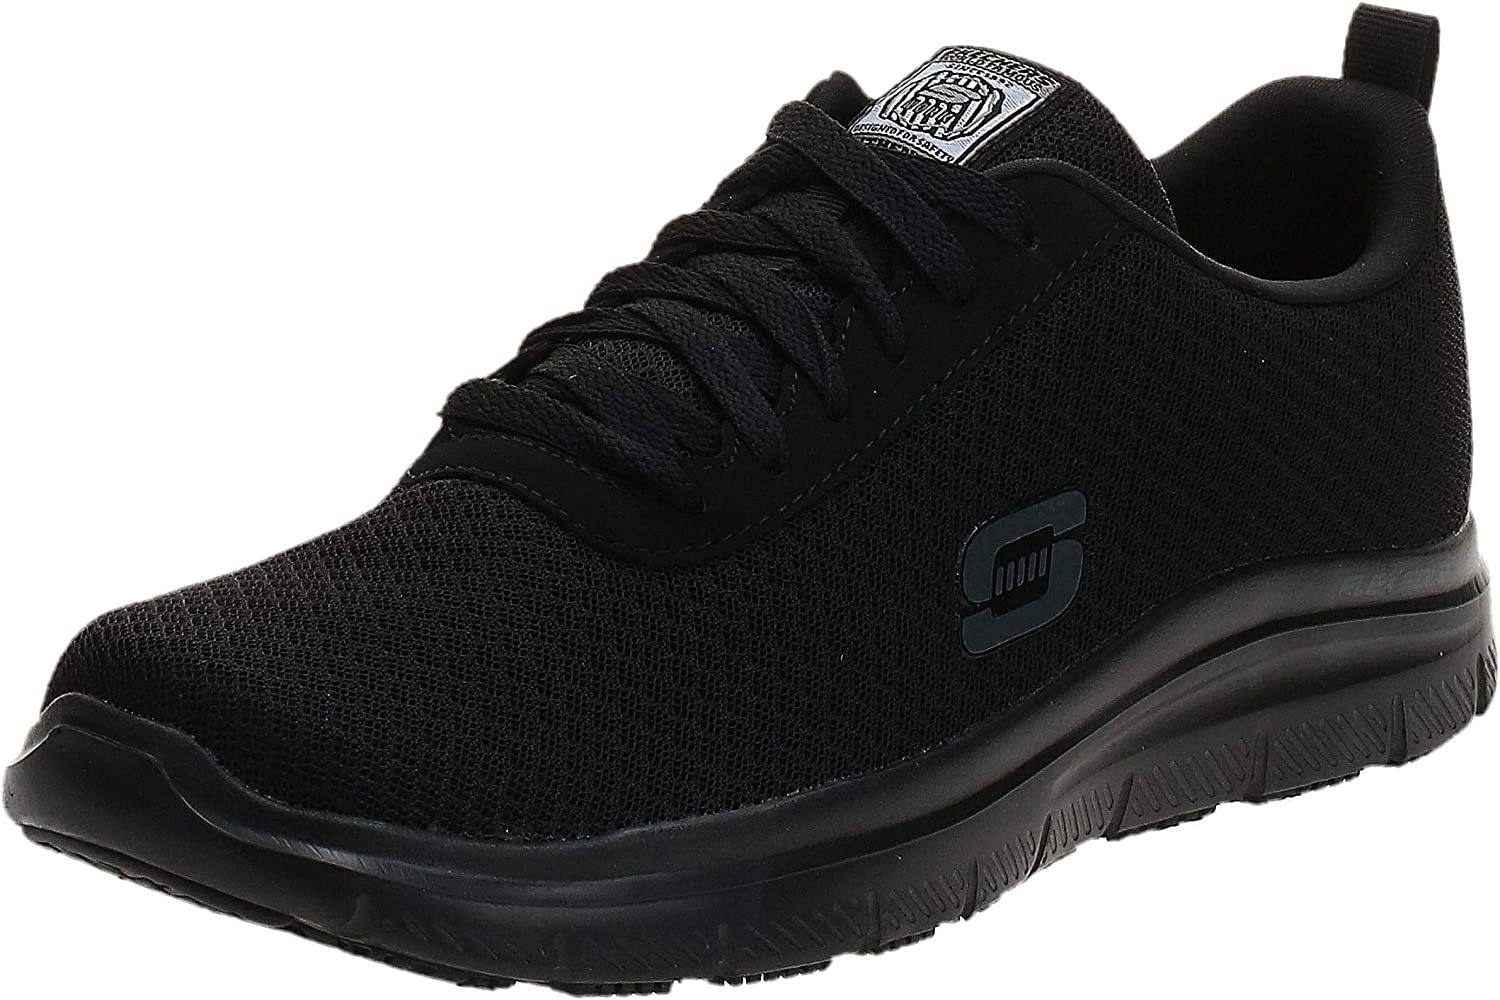 Skechers Men's Flex Advantage Bendon Work Shoe: Shoes